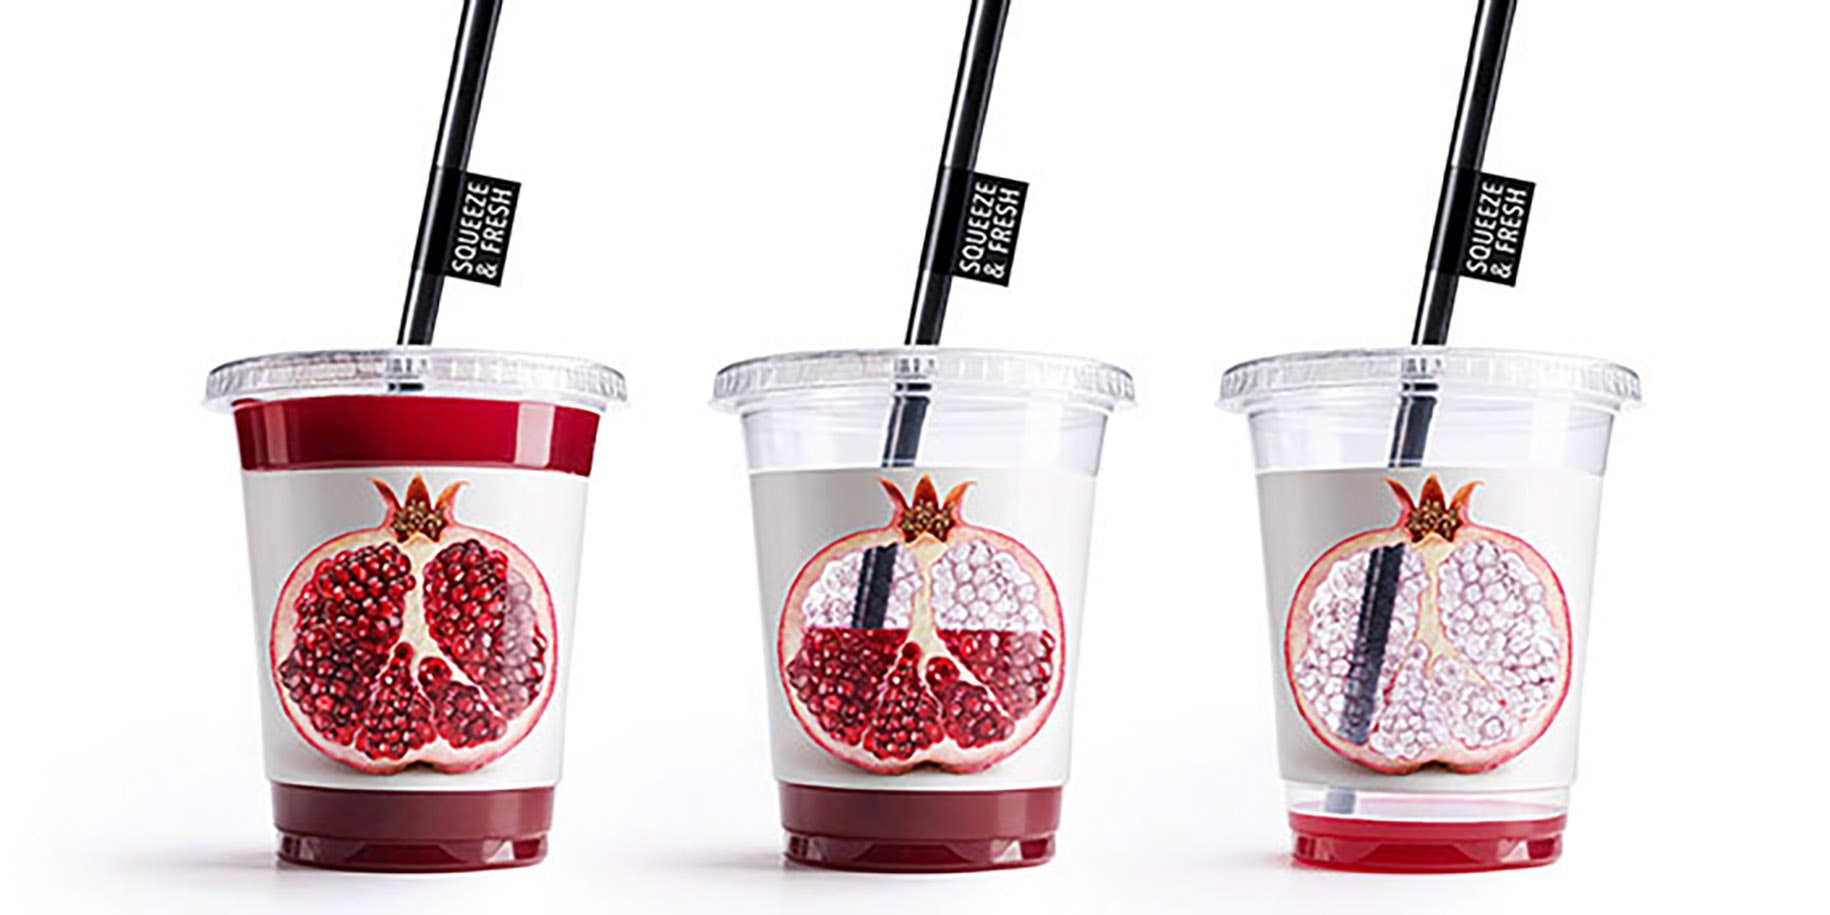 Pomegranate juice product packaging